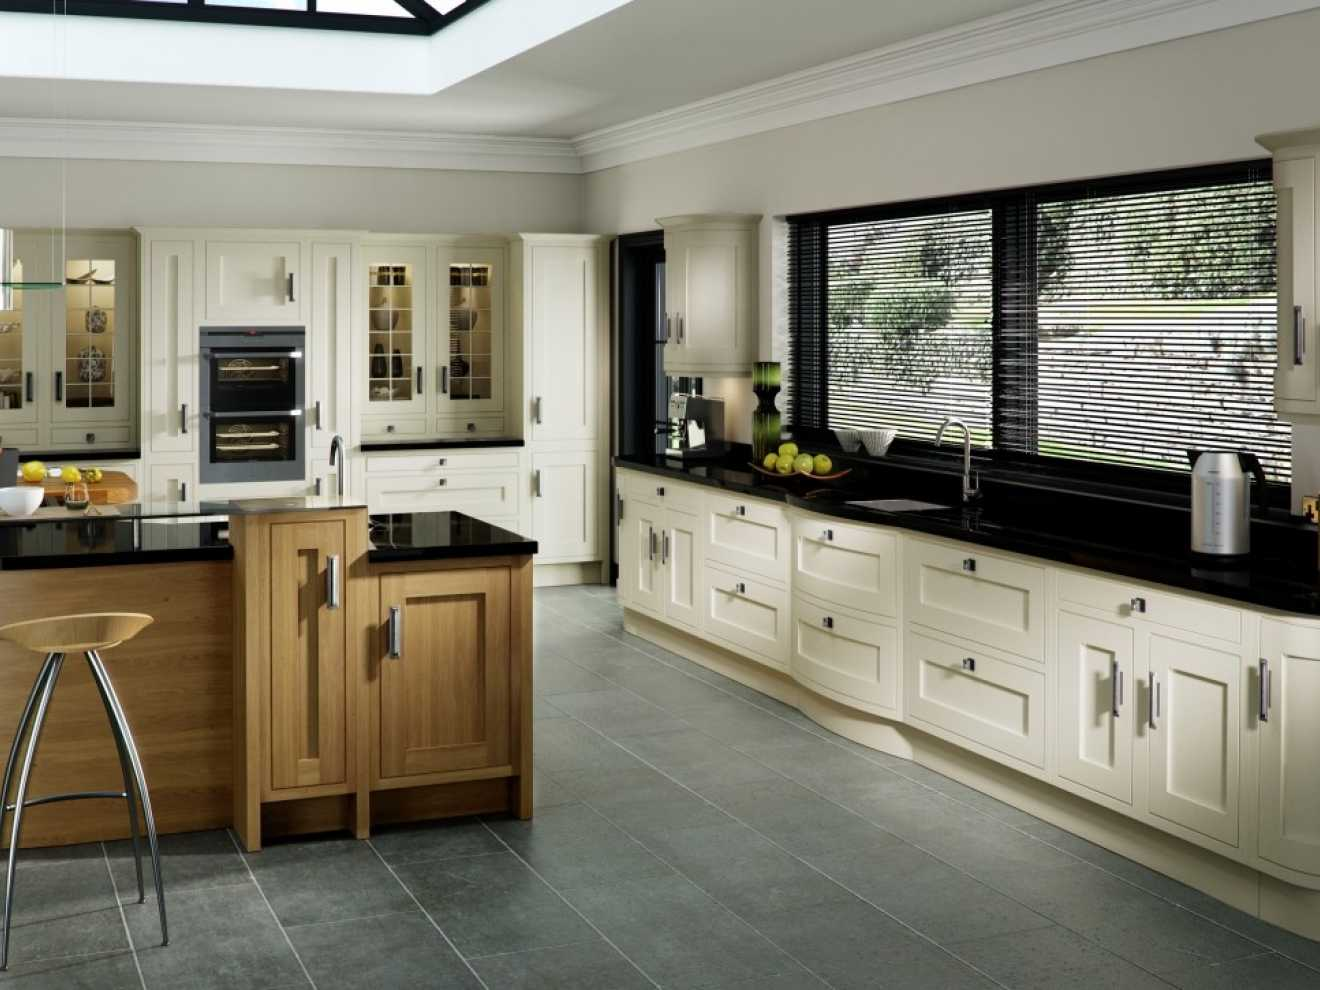 Kitchen Ideas Northern Ireland stevensons kitchens, derry, northern ireland for quality fitted